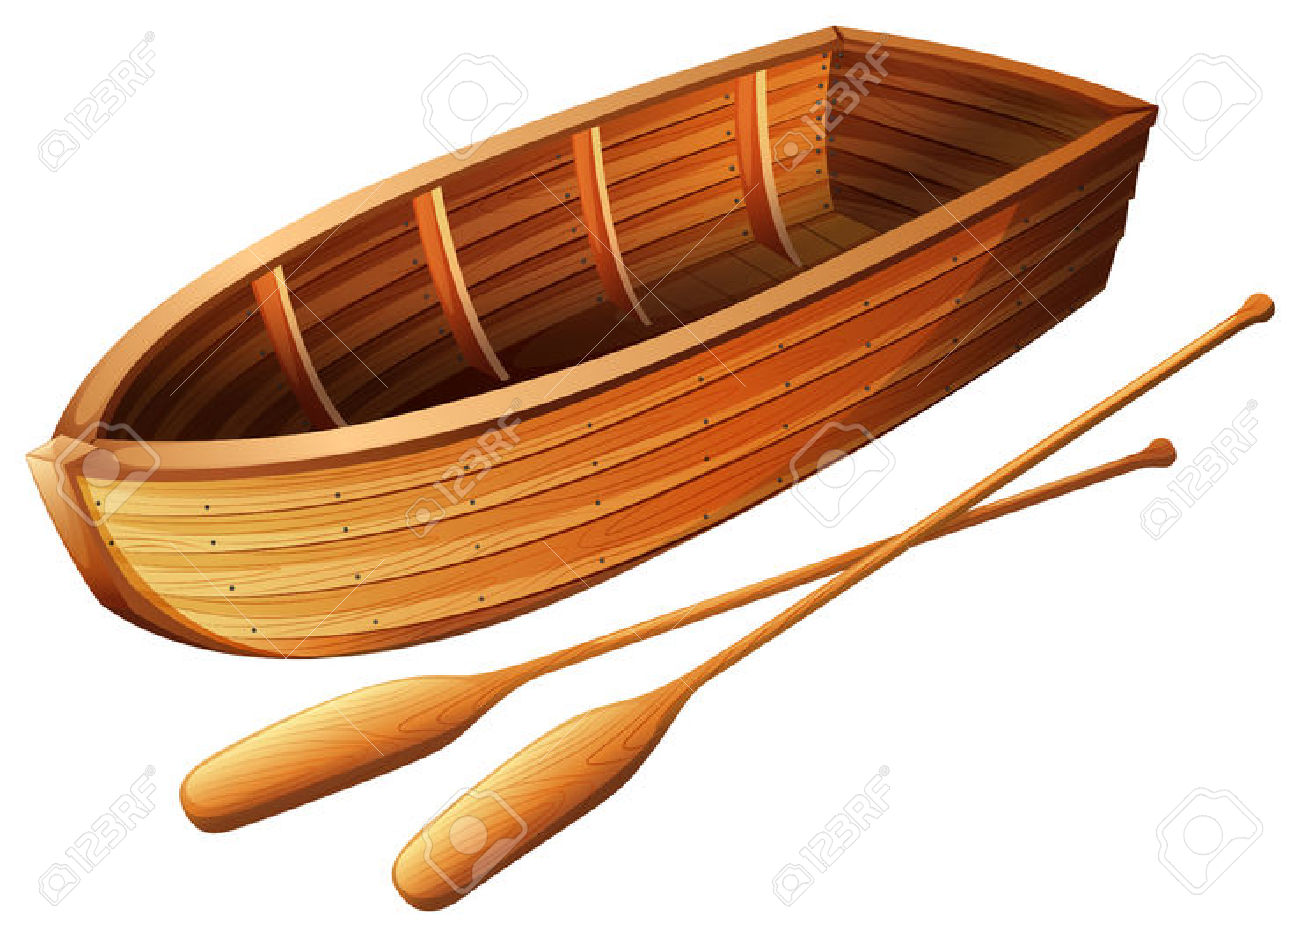 Wooden Boat On White Illustration Royalty Free Cliparts Vectors